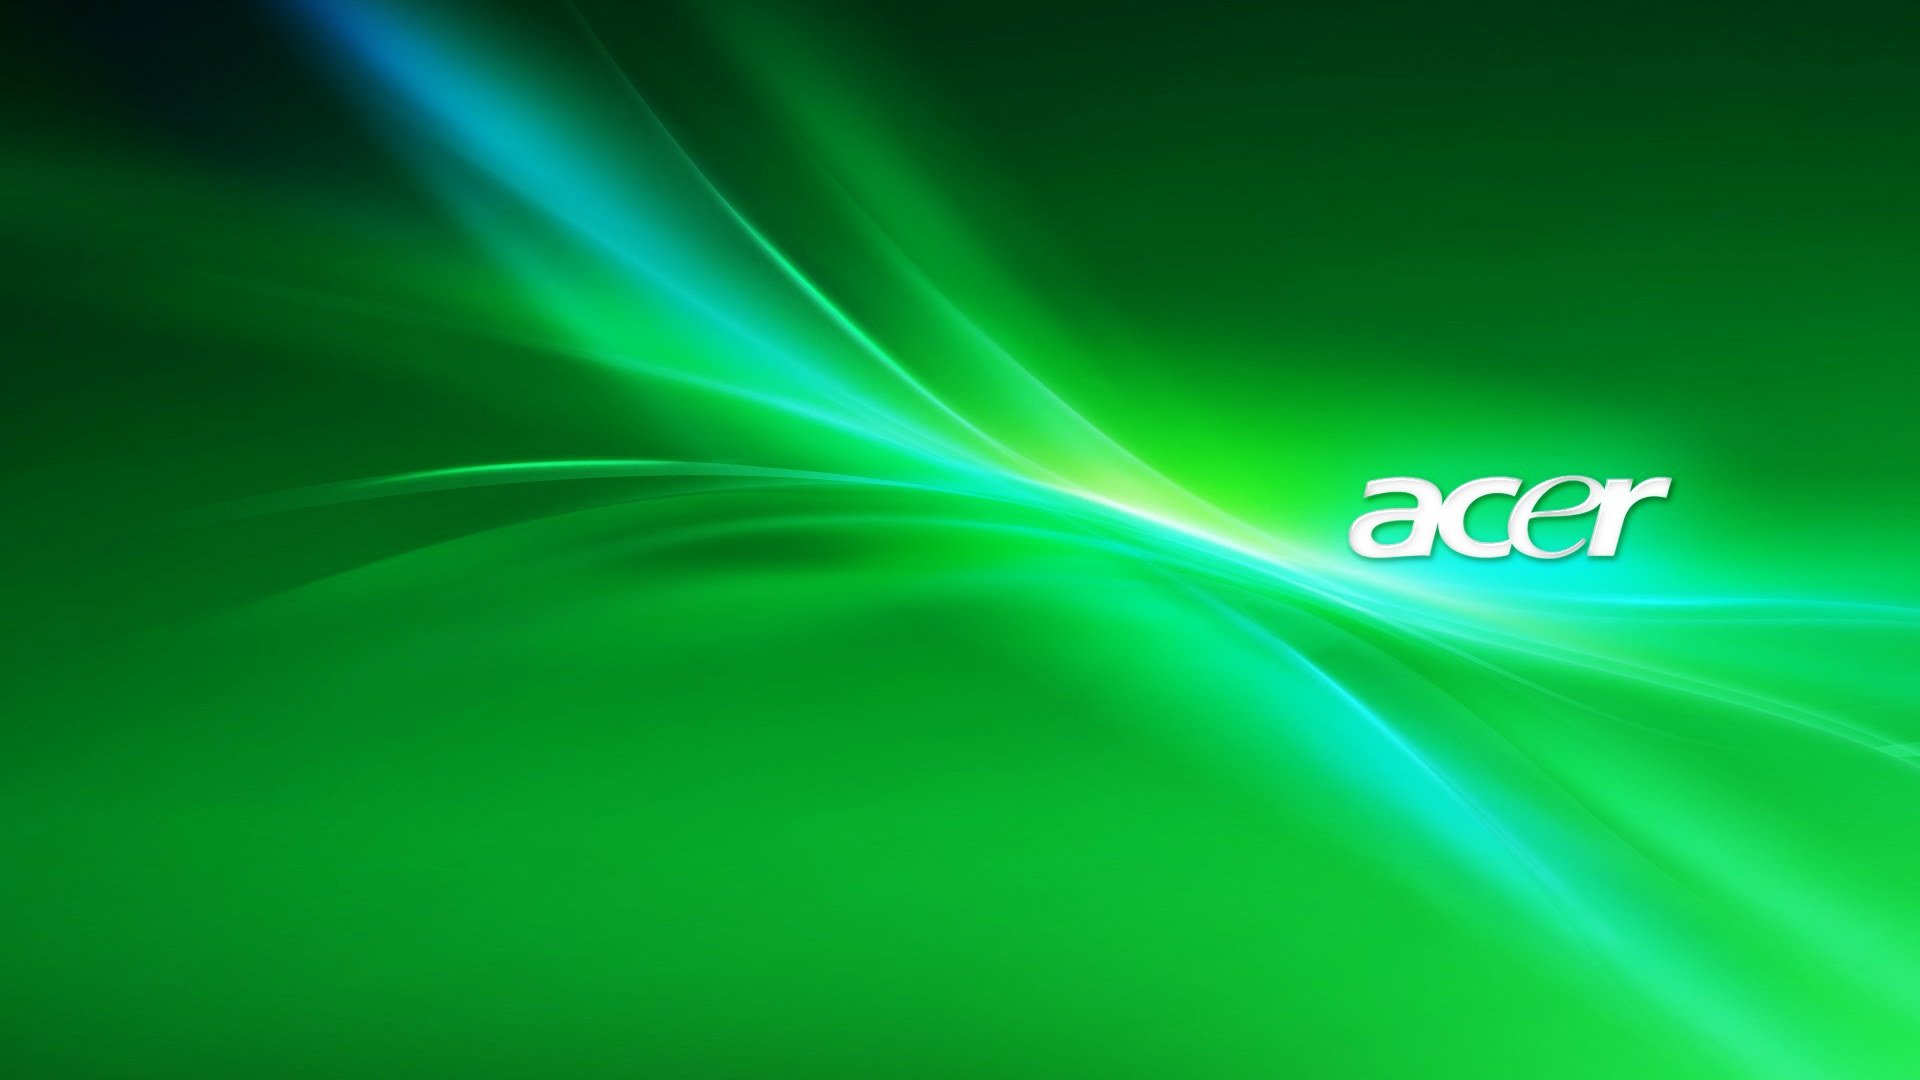 Acer windows 7 theme download free for windows 10, 7, 8/8. 1 (64.